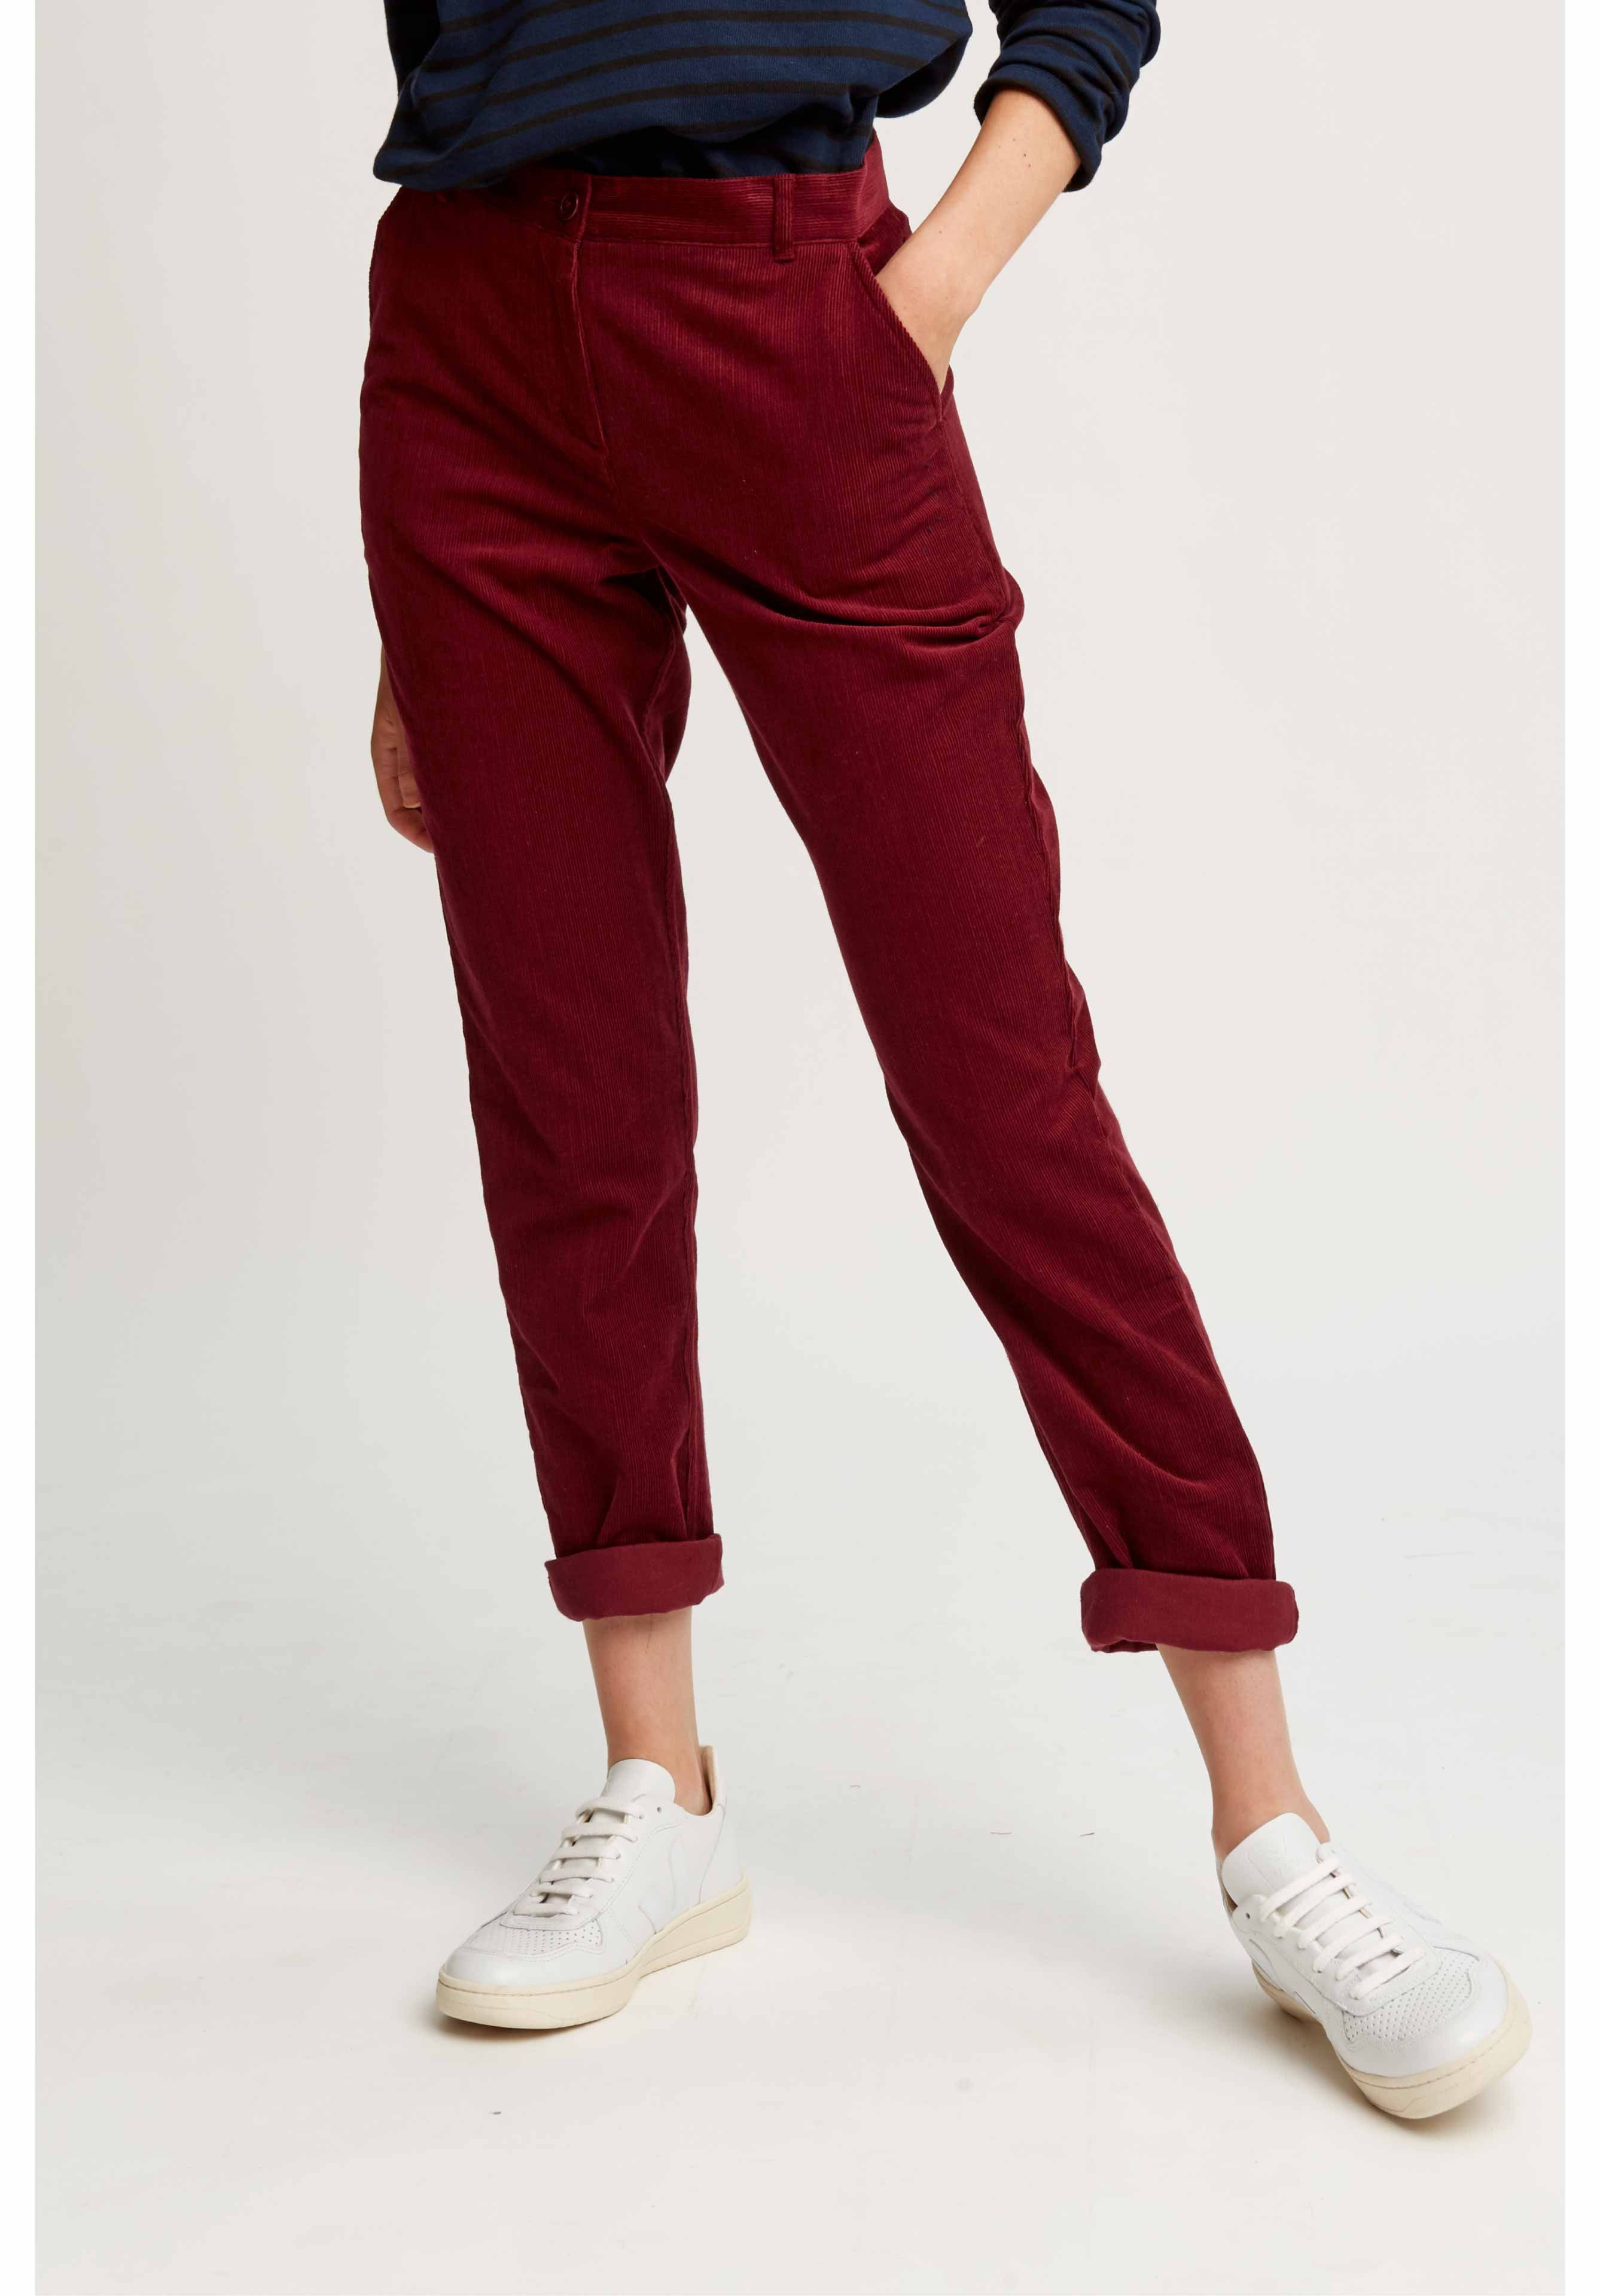 31af2fc0d Trousers - Kana Corduroy Trousers Burgundy | Sustainable Fashion in ...